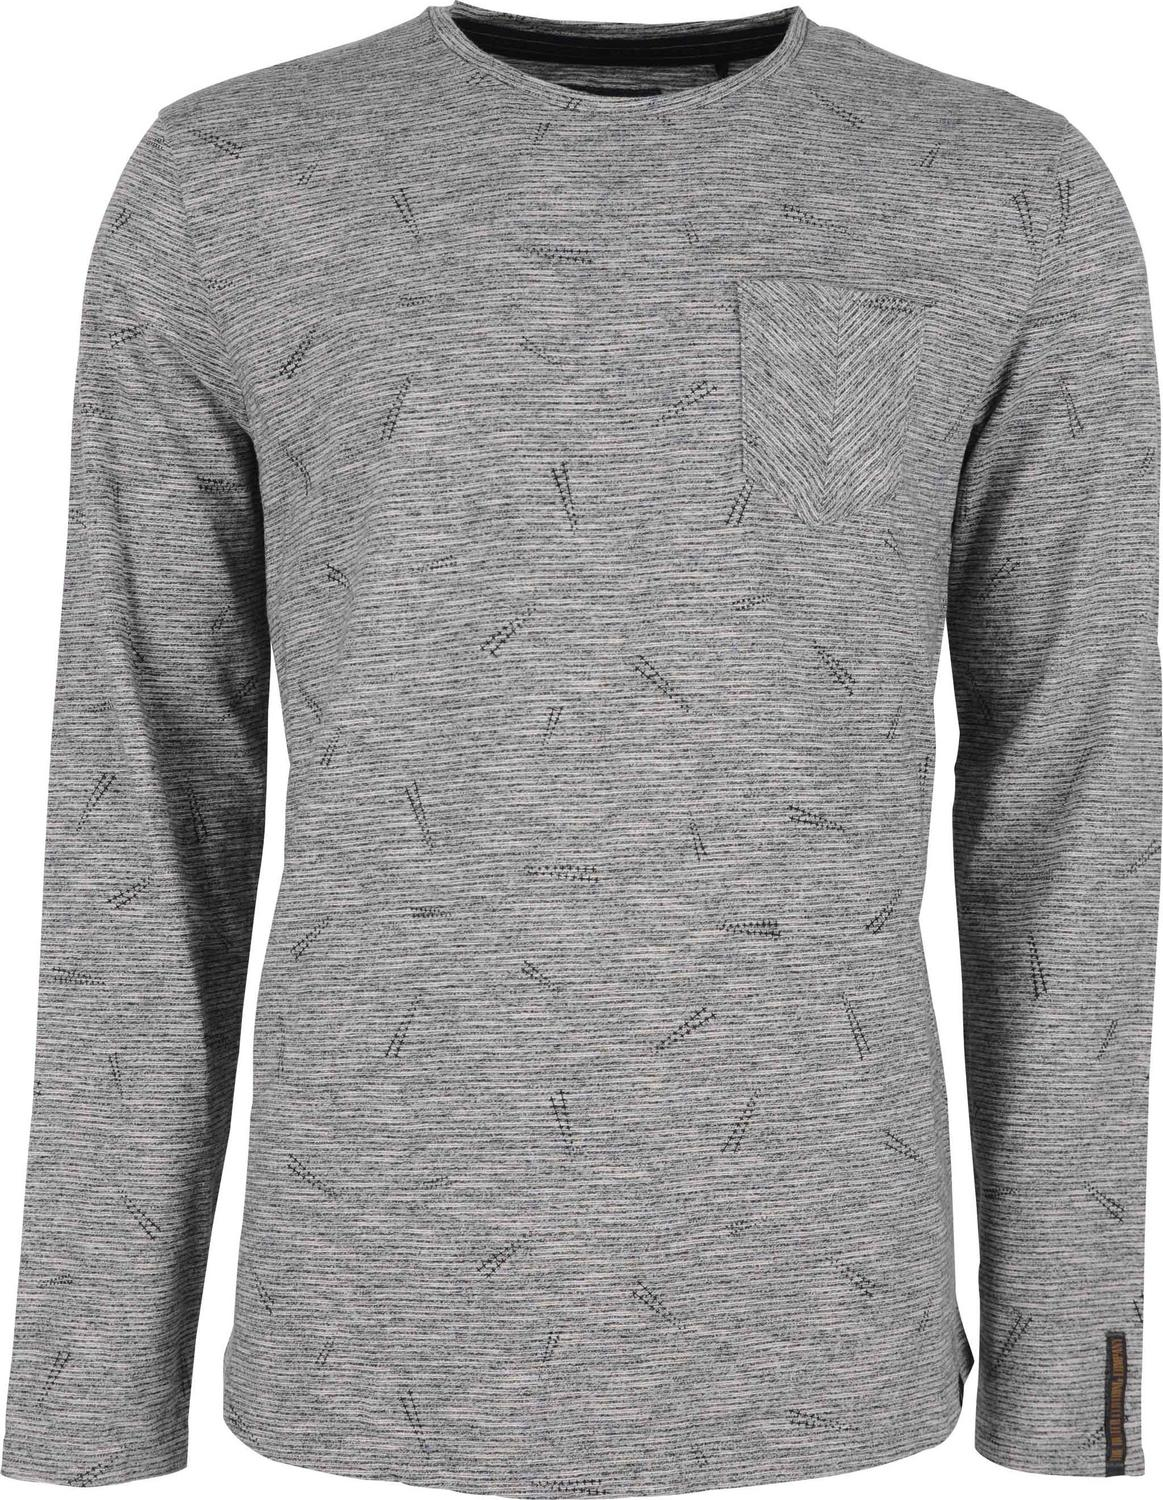 Round Neck Printed T-shirt With Chest Pocket